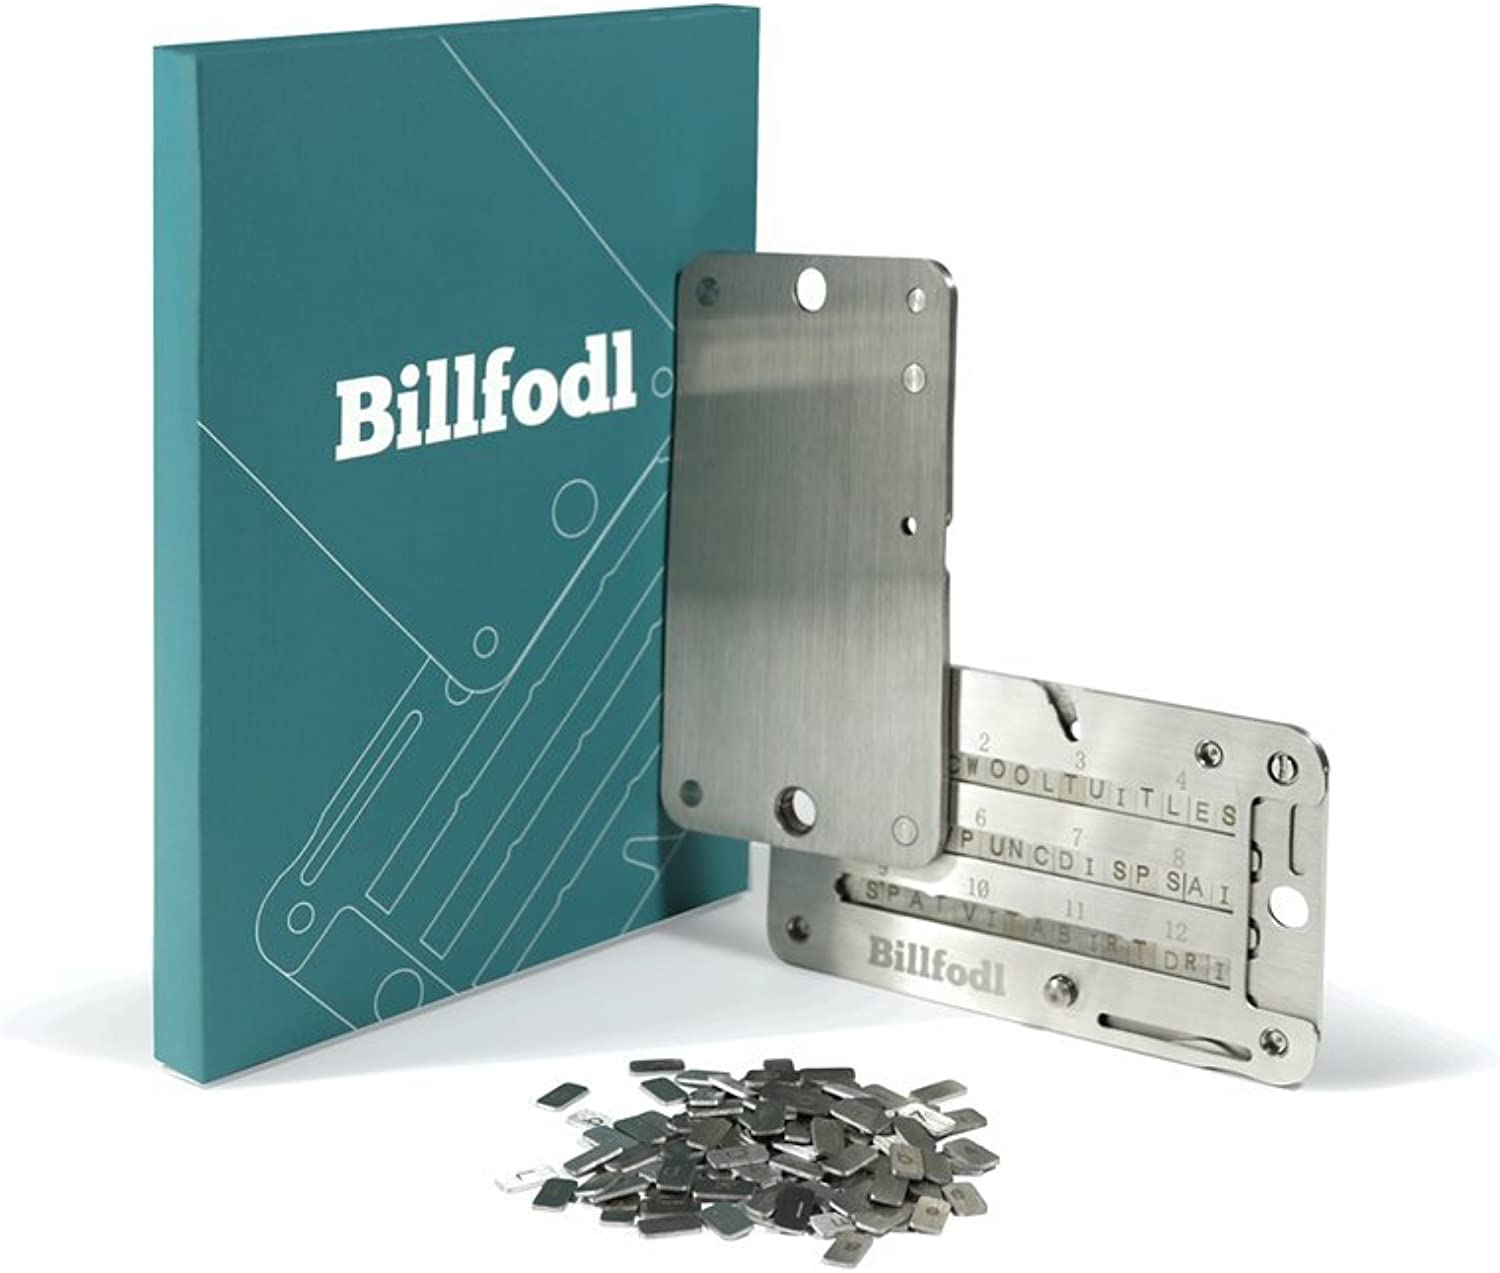 Billfodl MNEMONIC Private Key cold storage wallet for cryptocurrency